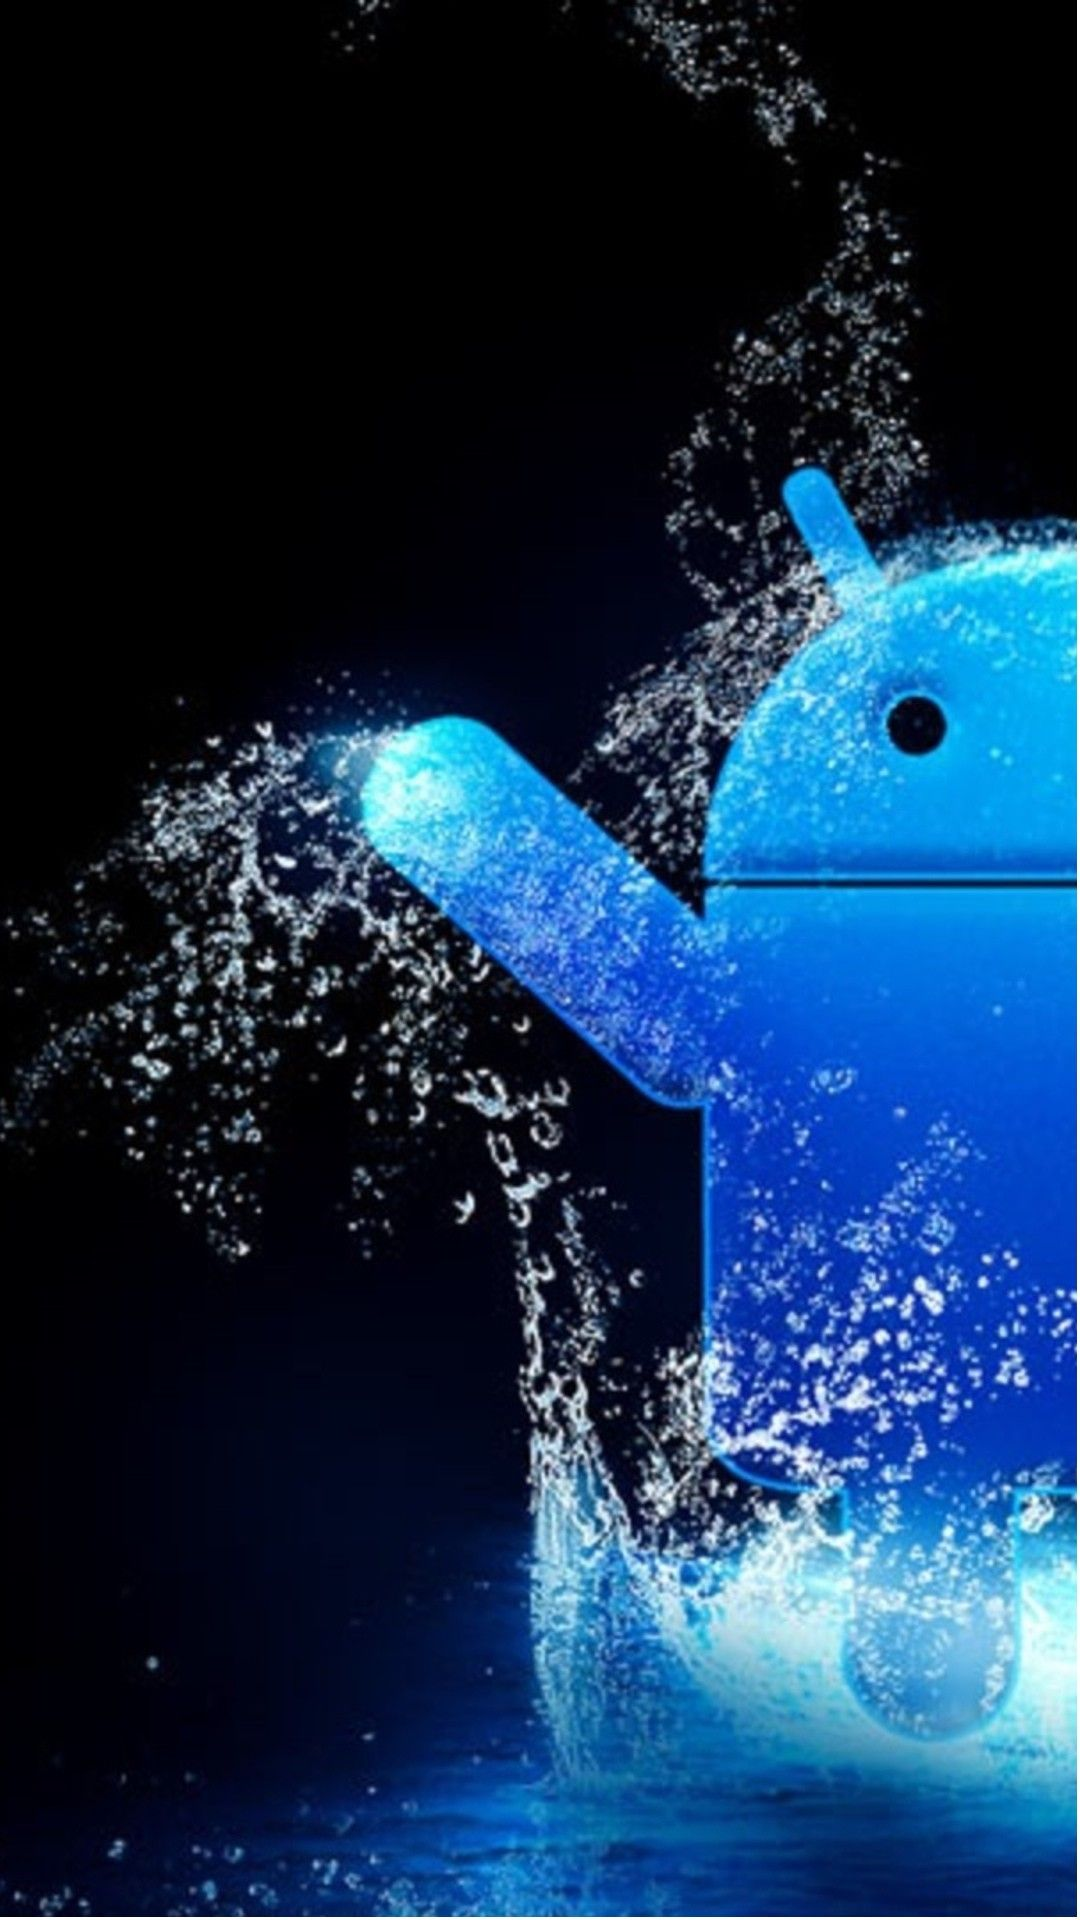 Samsung Hd Wallpaper For Android Posted By Ryan Sellers